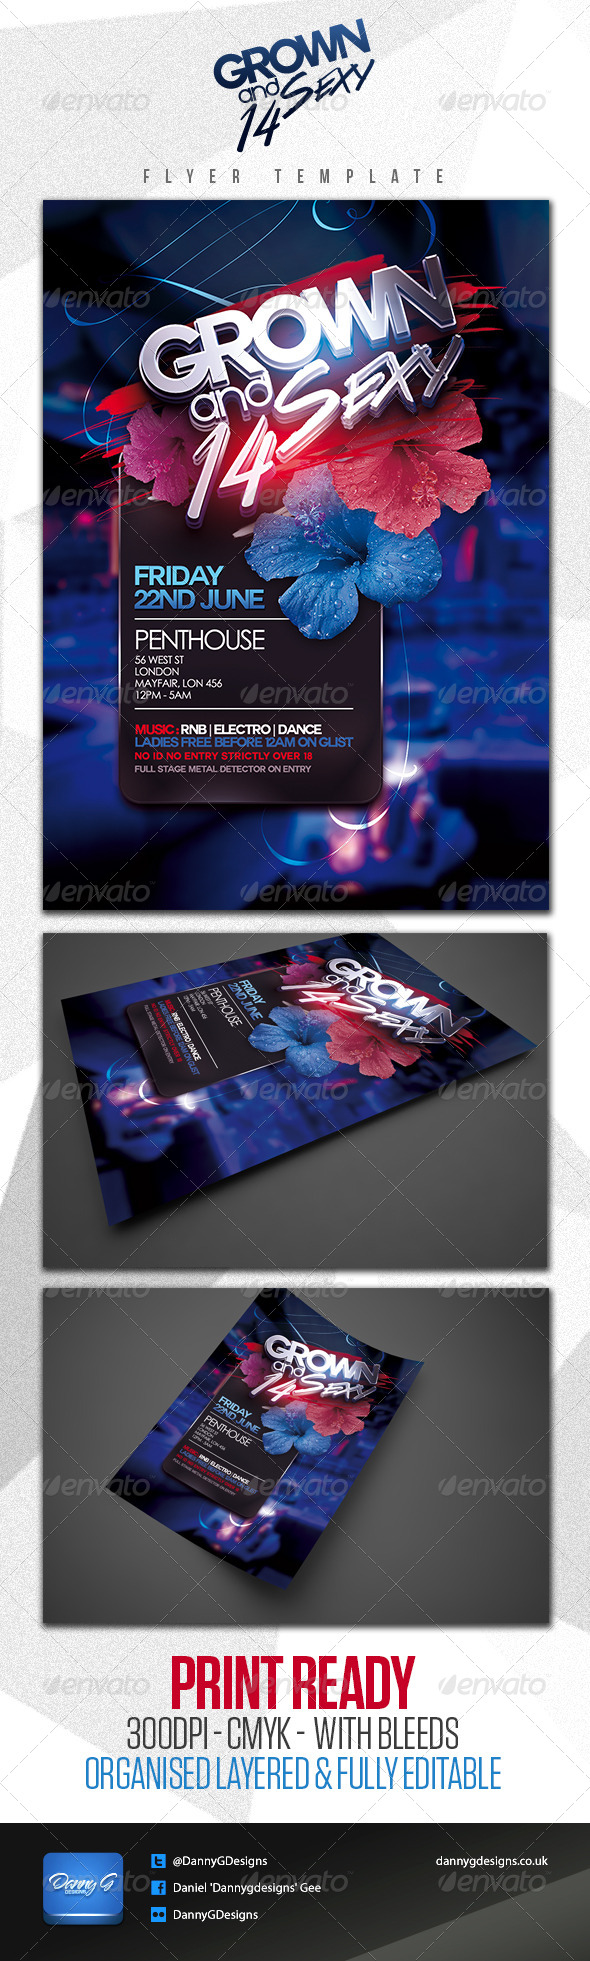 Grown & Sexy '14 Flyer Template - Clubs & Parties Events